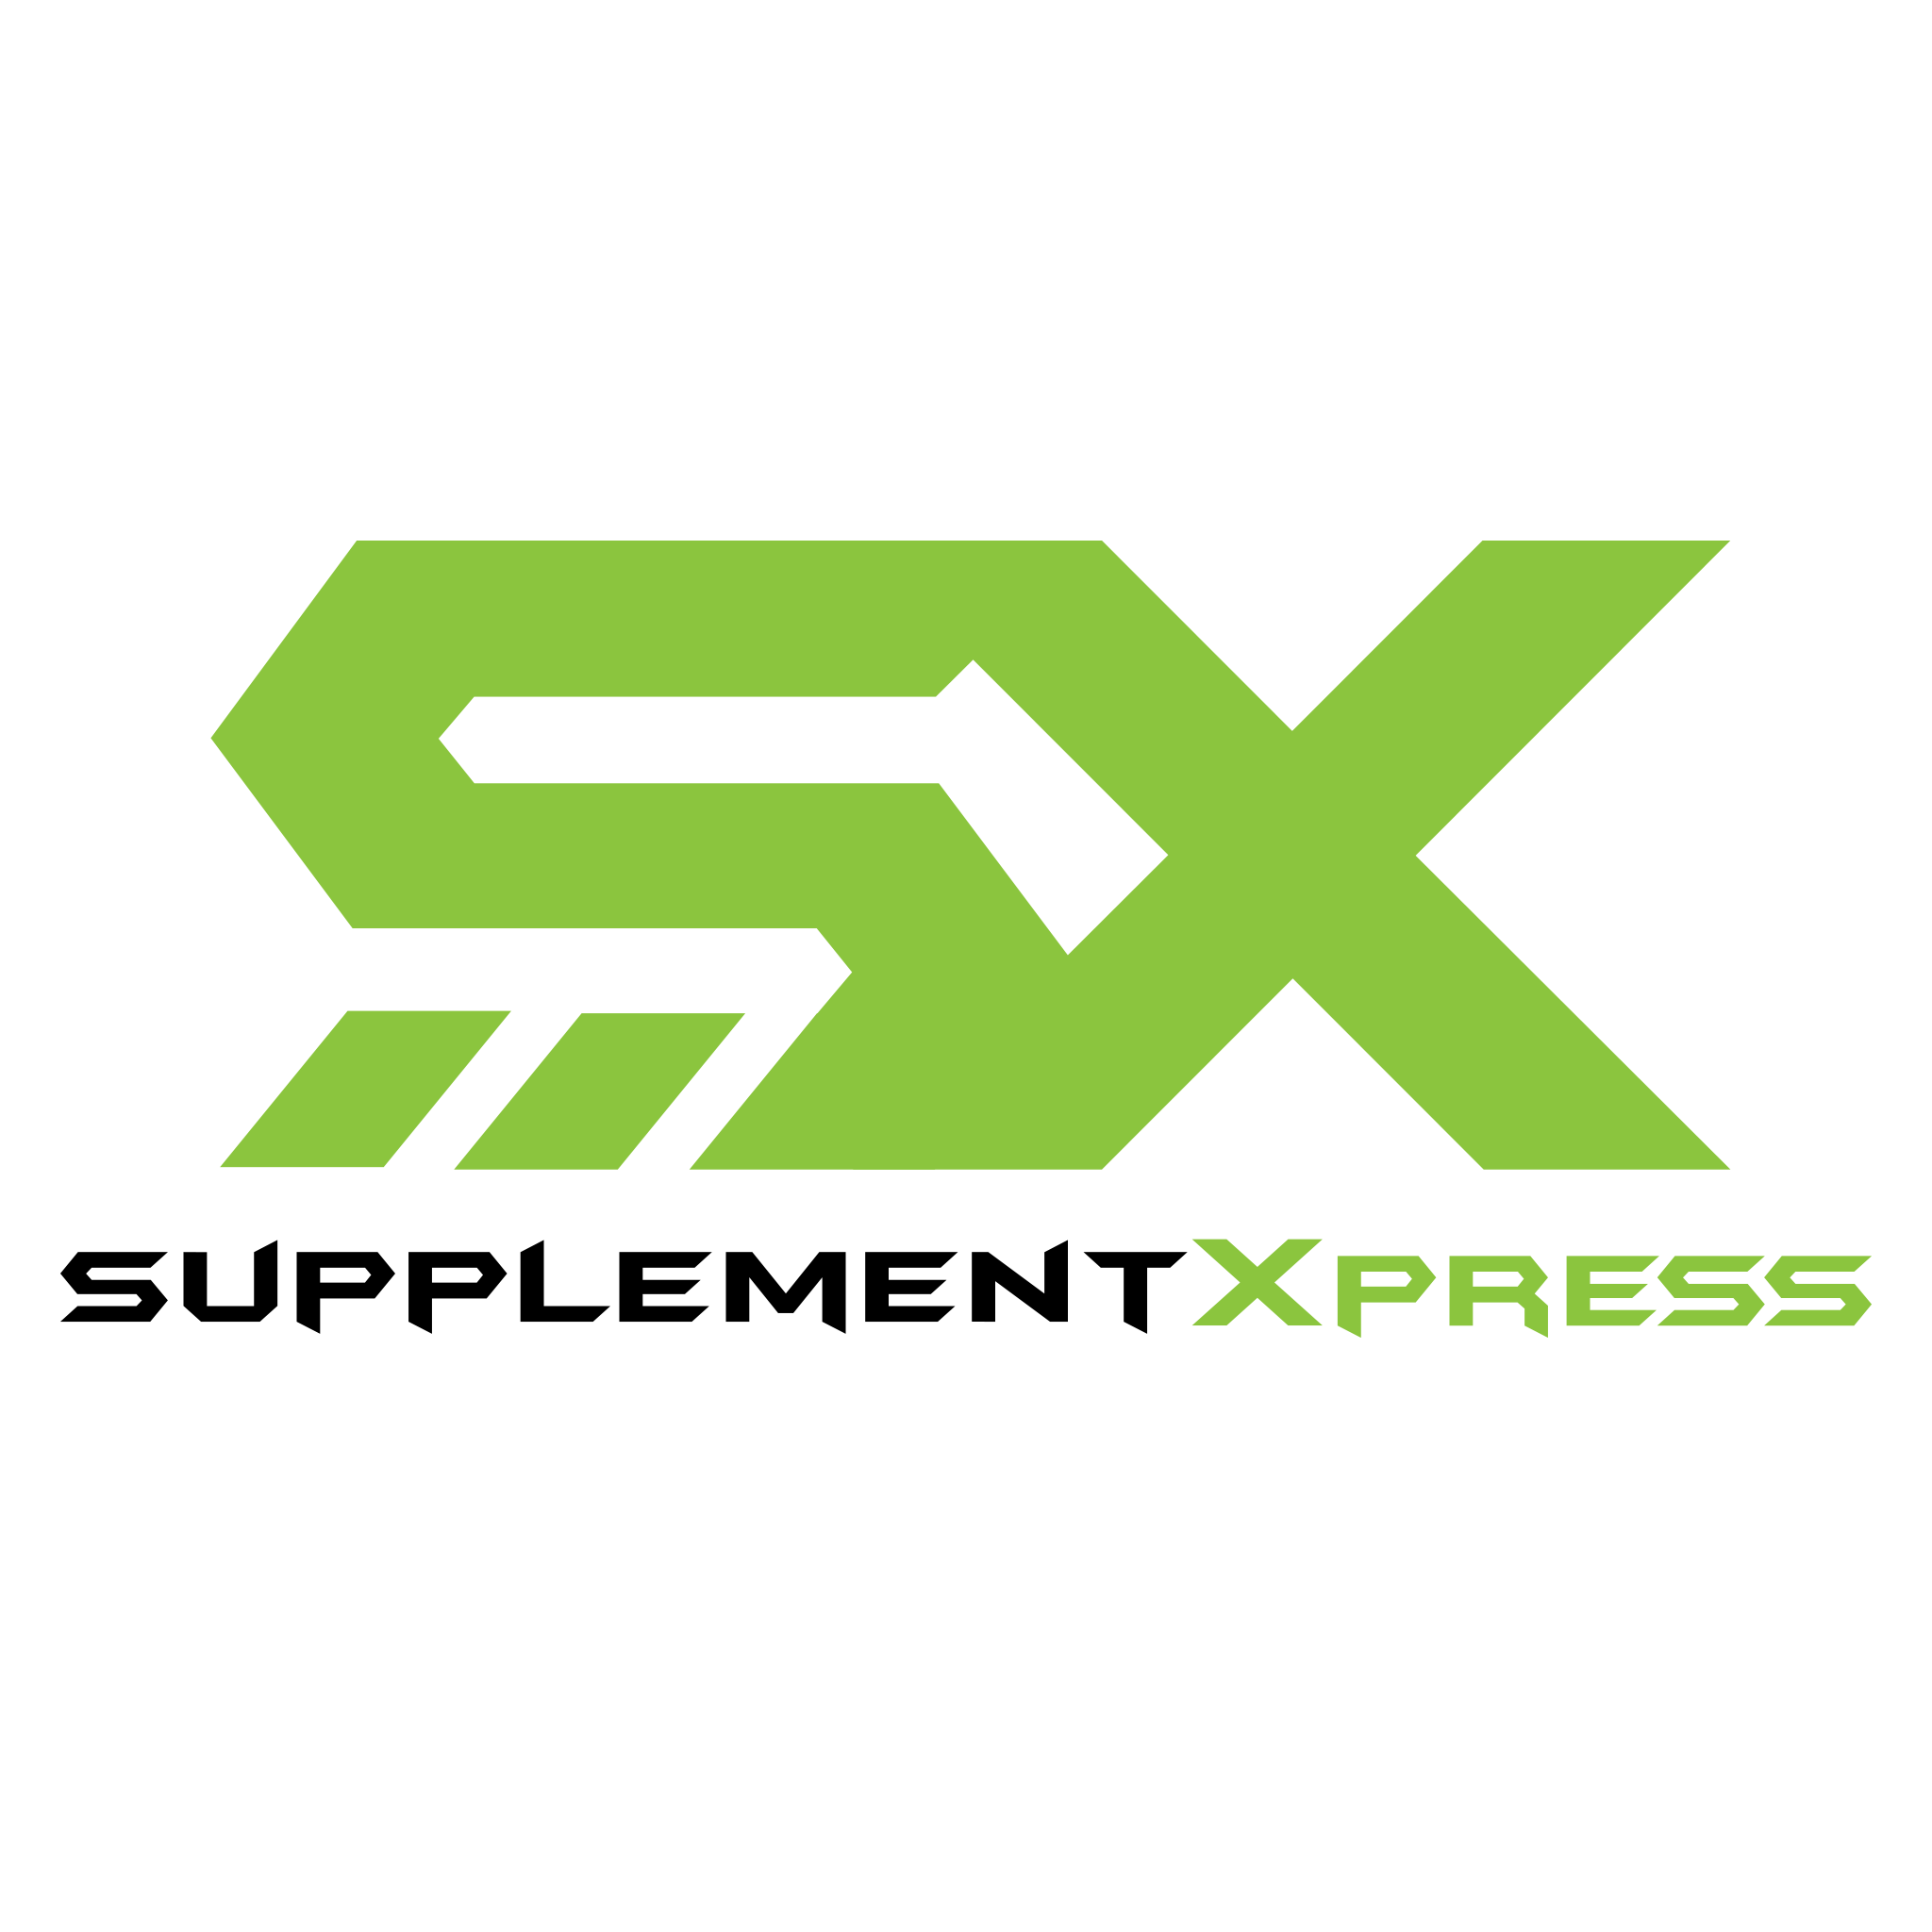 Supplement Xpress Franchise